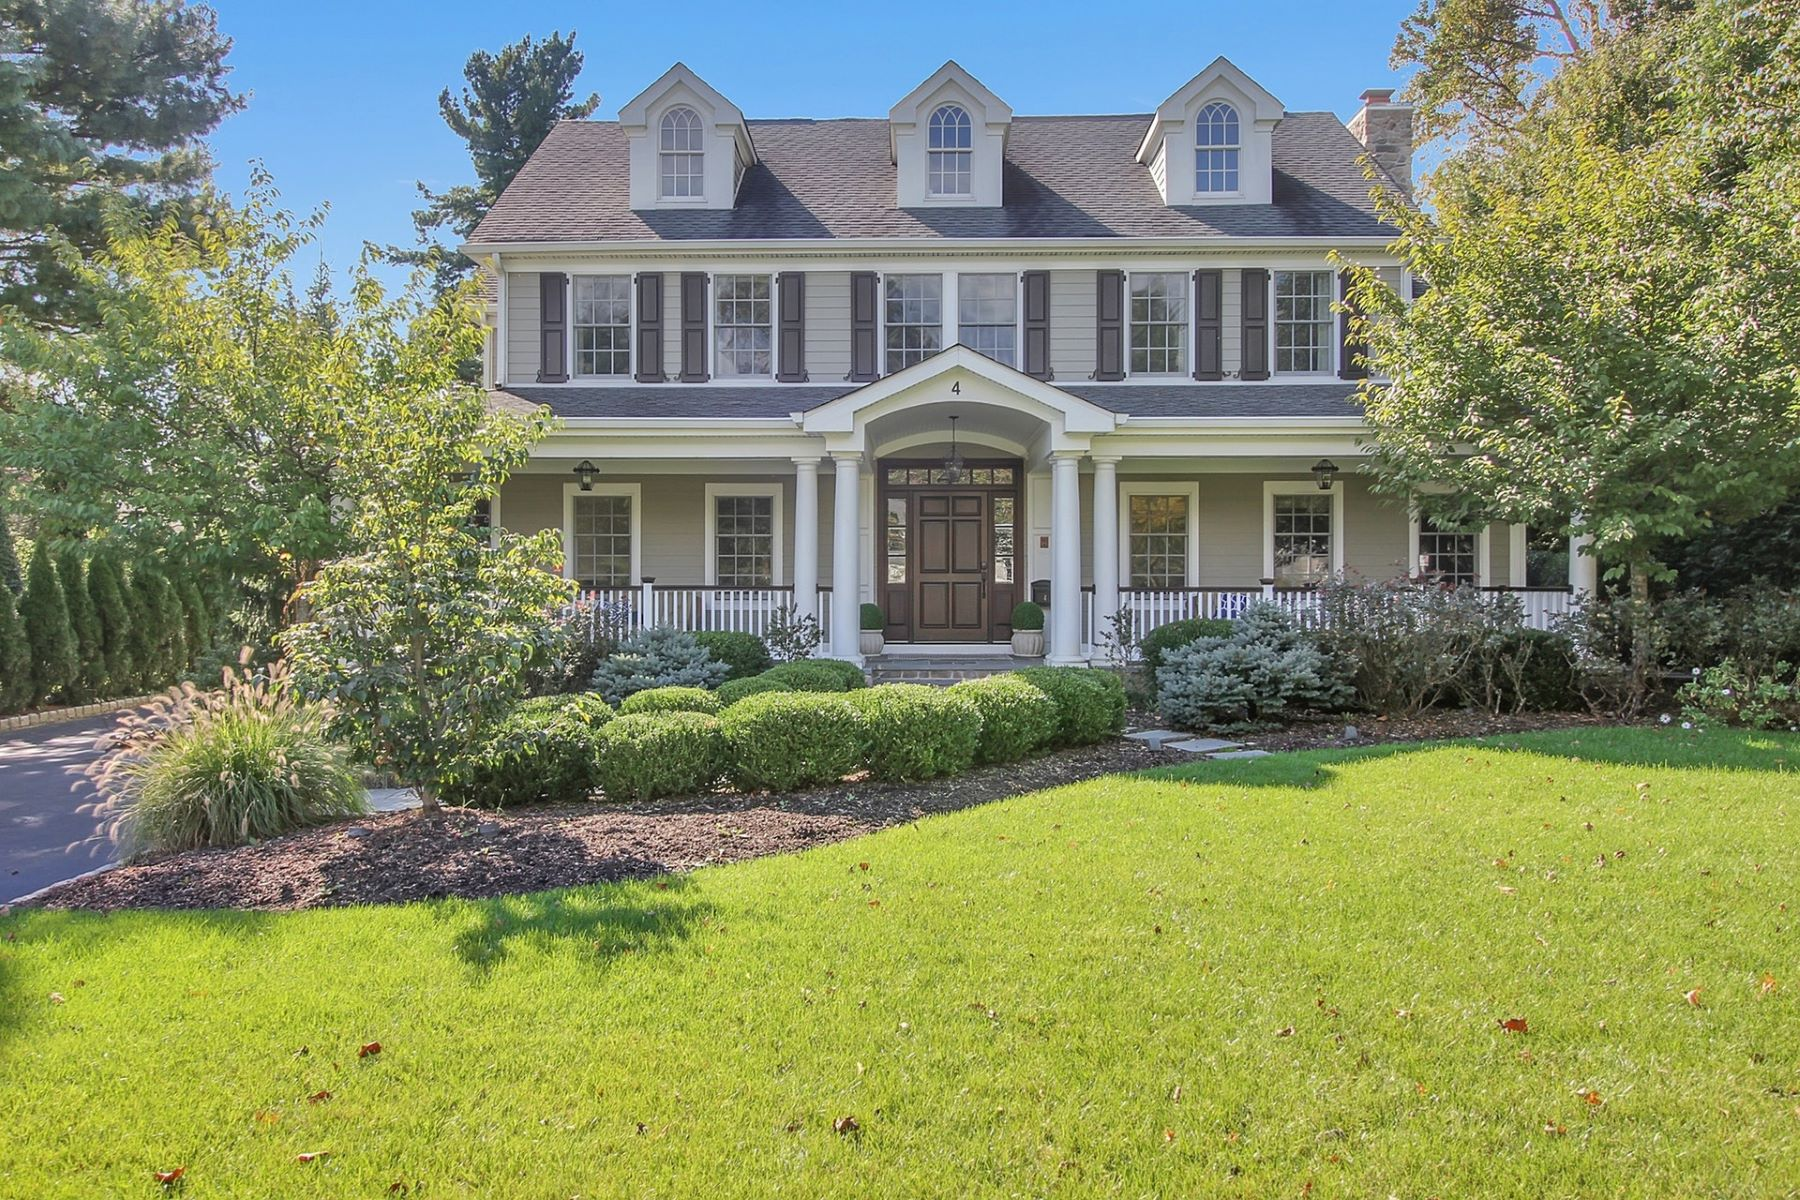 Single Family Homes for Sale at Gracious Living 4 Windsor Road Summit, New Jersey 07901 United States